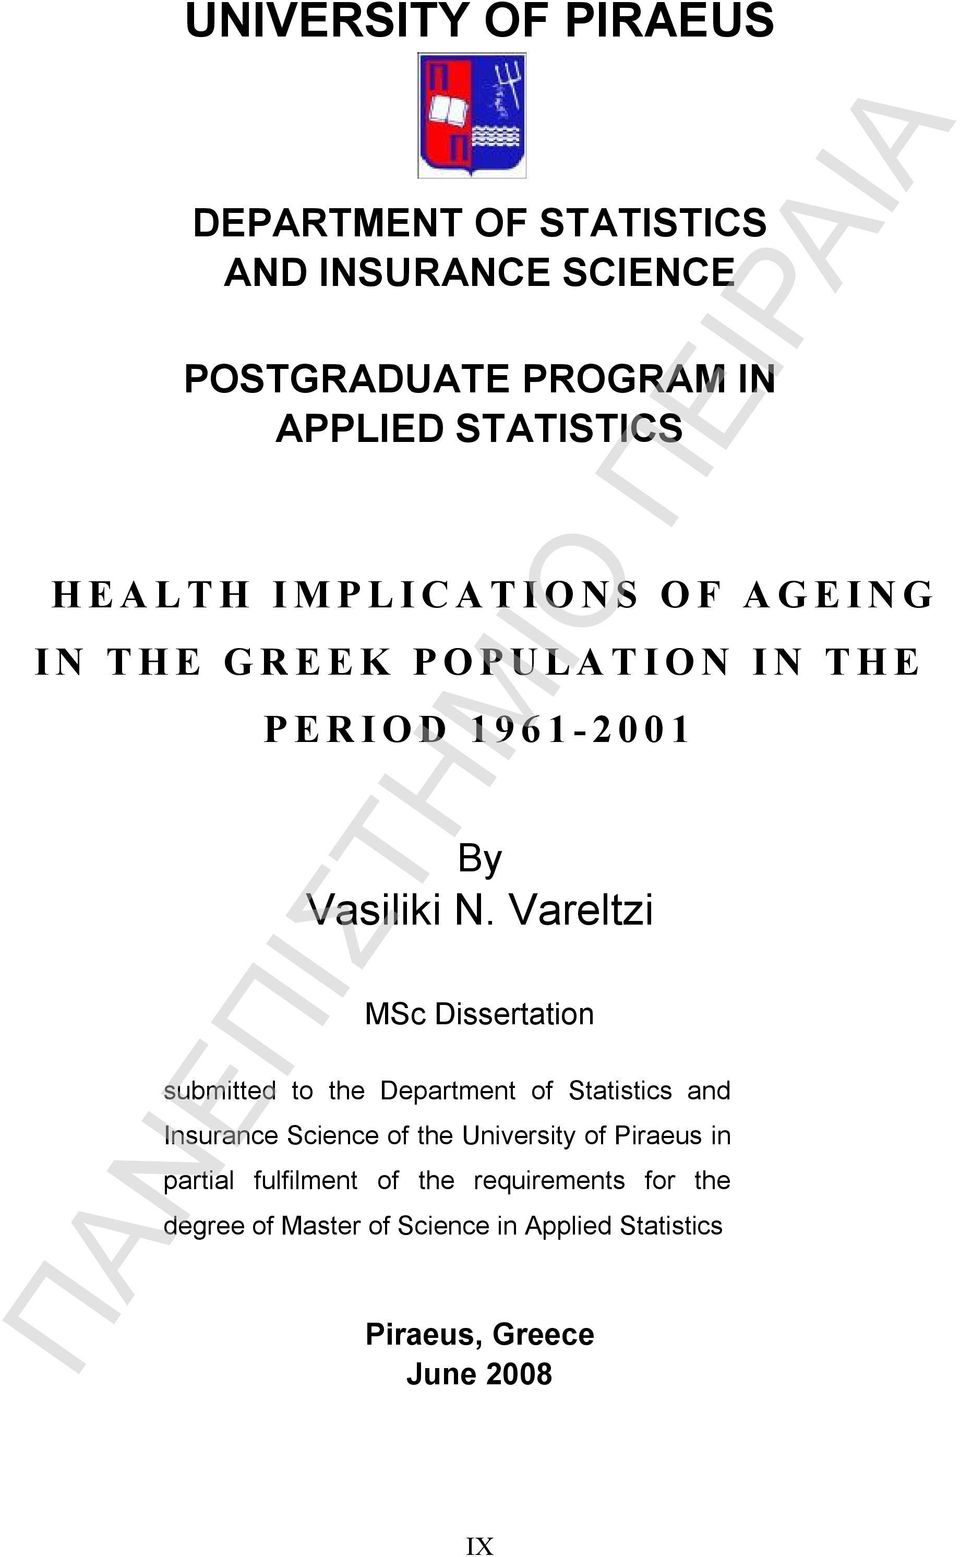 Vareltzi MSc Dissertation submitted to the Department of Statistics and Insurance Science of the University of